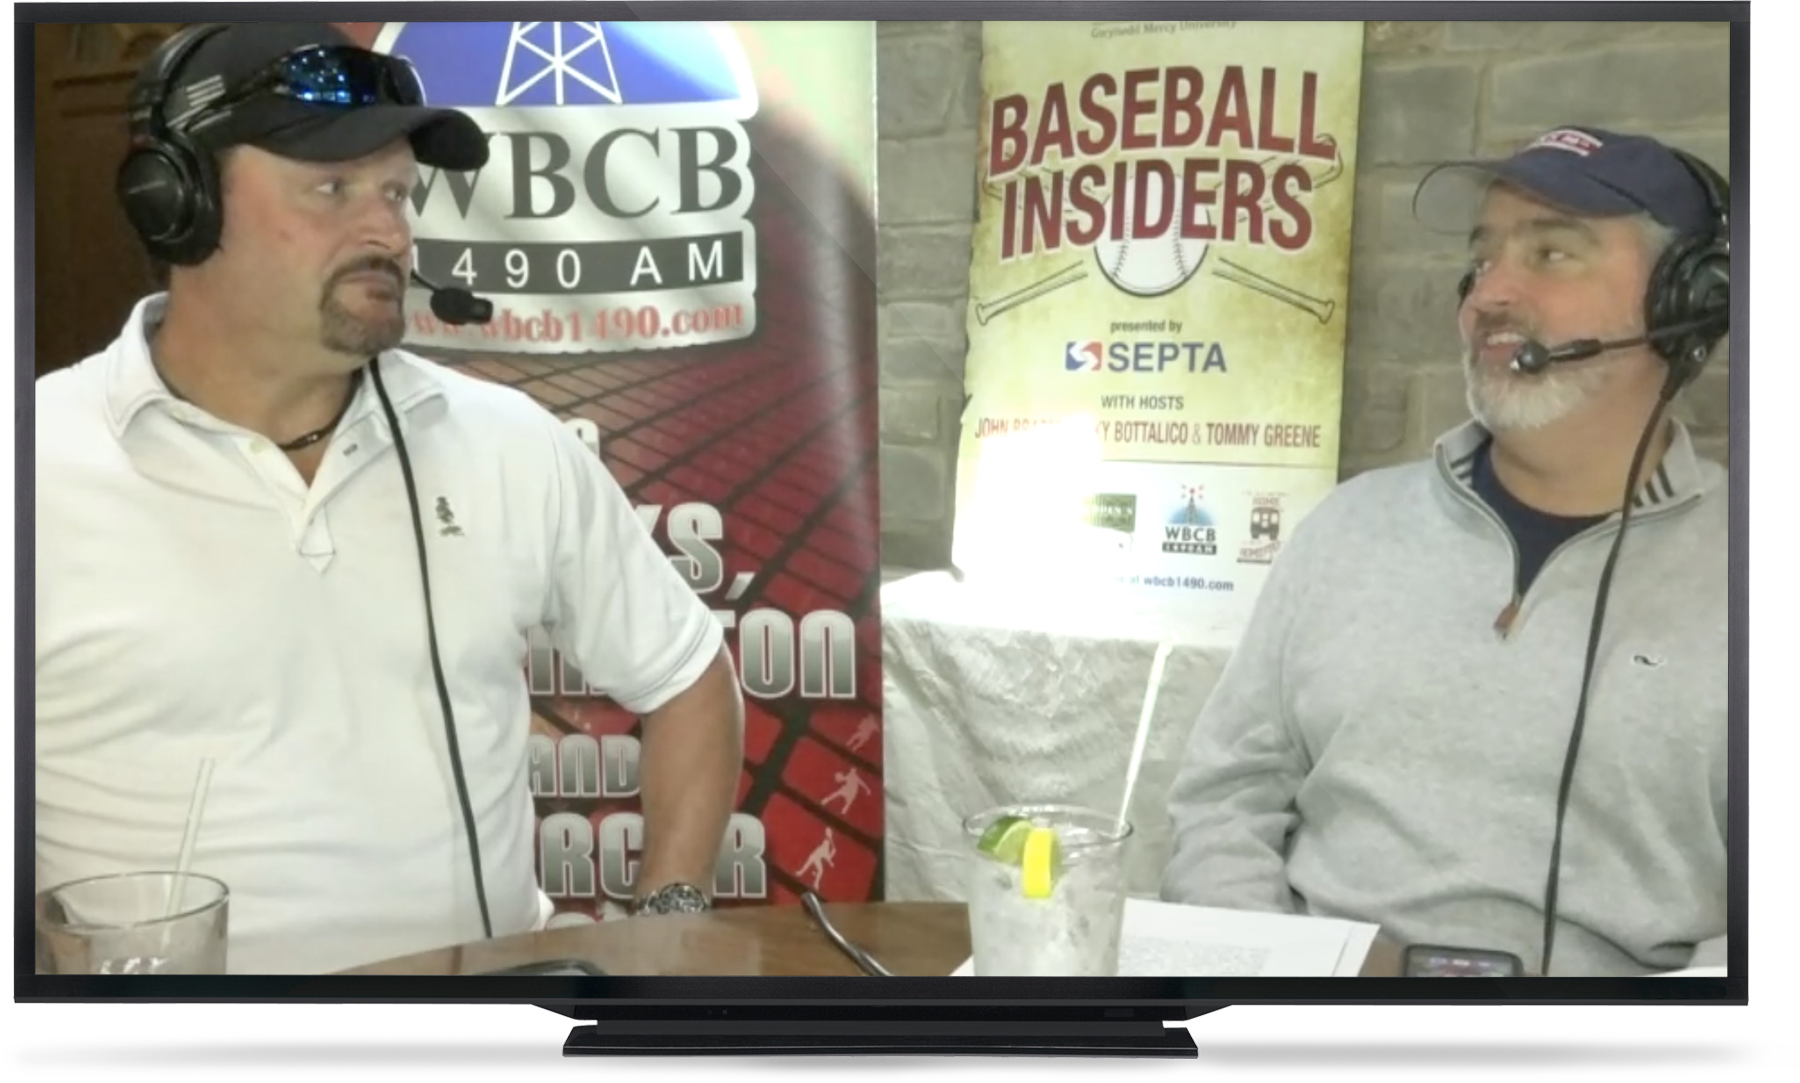 Watch the Baseball Insiders show live on WBCB Sports